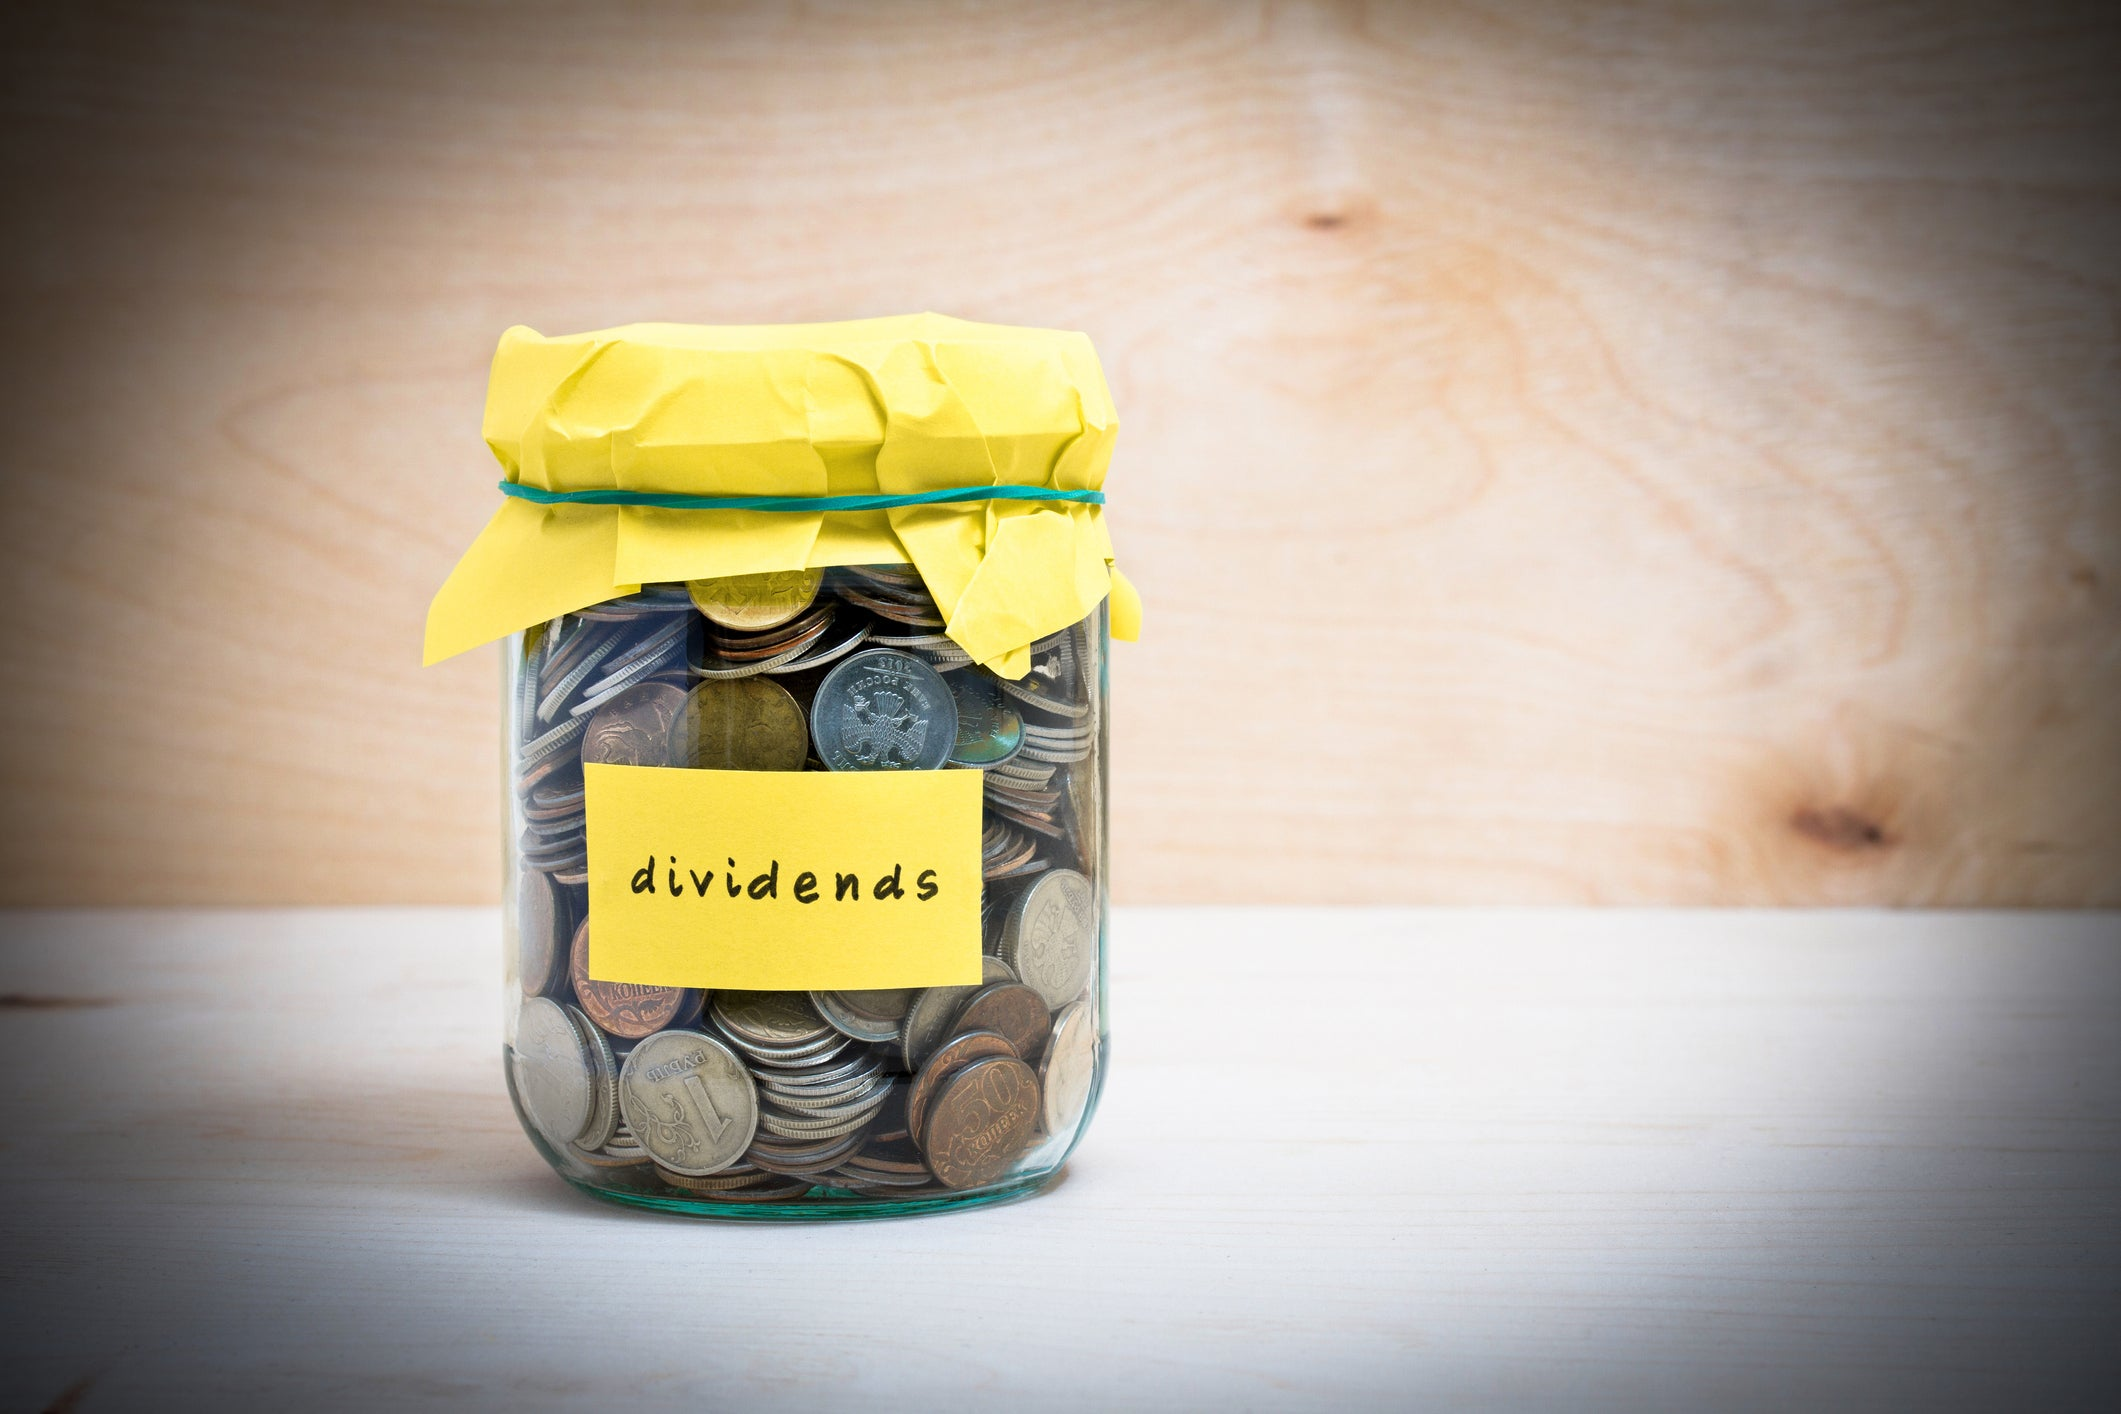 5 Top Dividend Stocks With Yields Over 5%